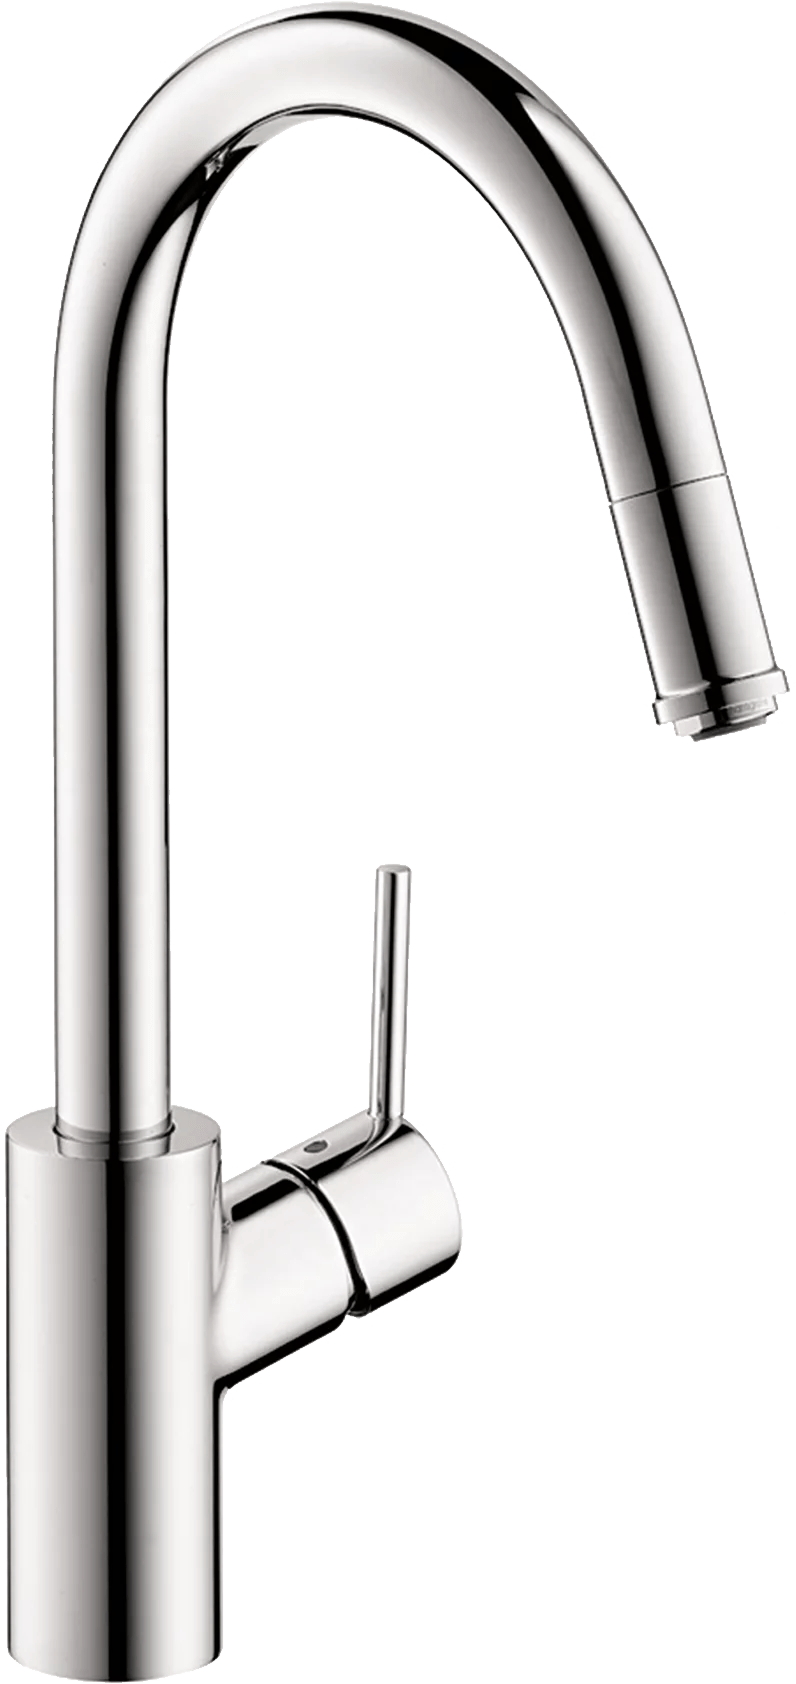 hansgrohe talis s higharc kitchen faucet 1 spray pull down 1 75 gpm in chrome